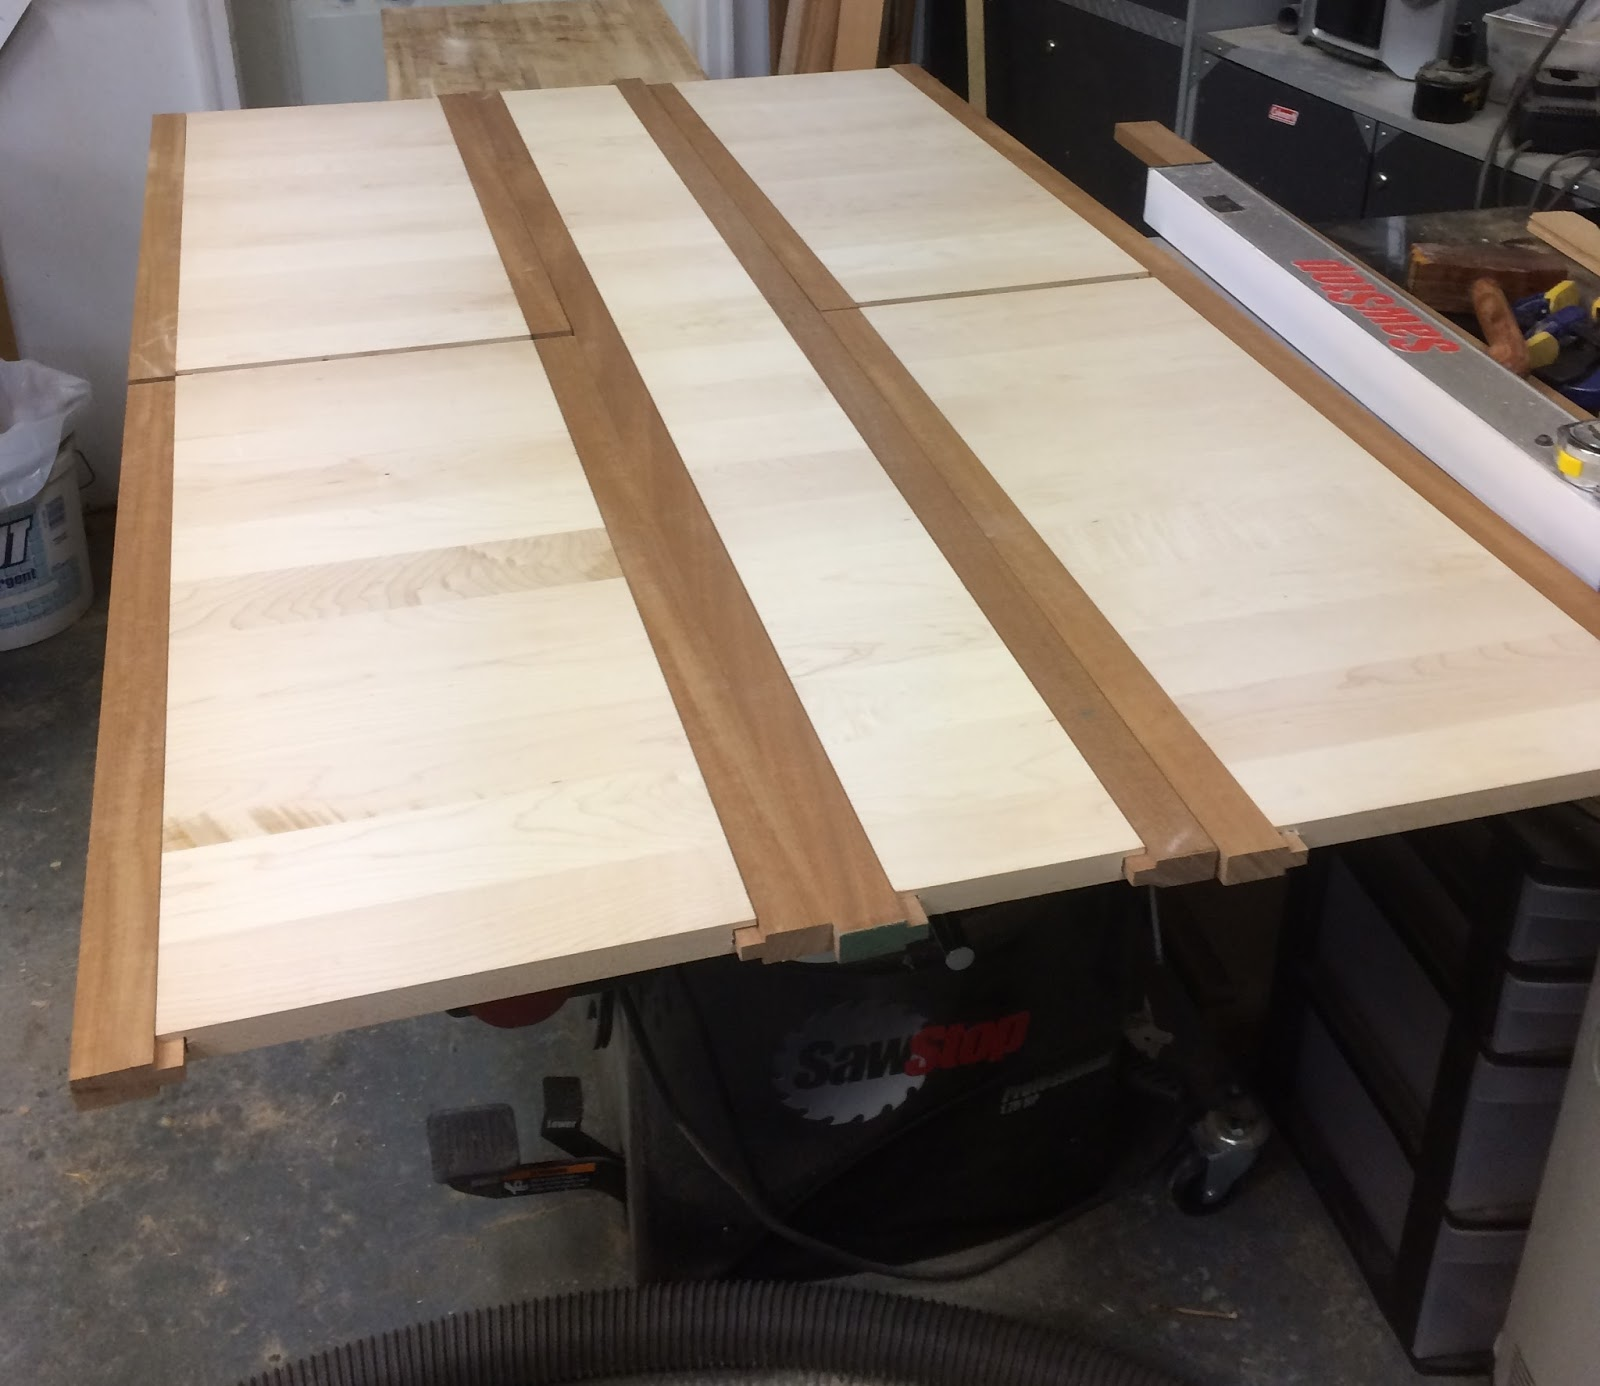 Atlast The Boat That Cai Built Is Building Our Table And Saw Stop Table Saw